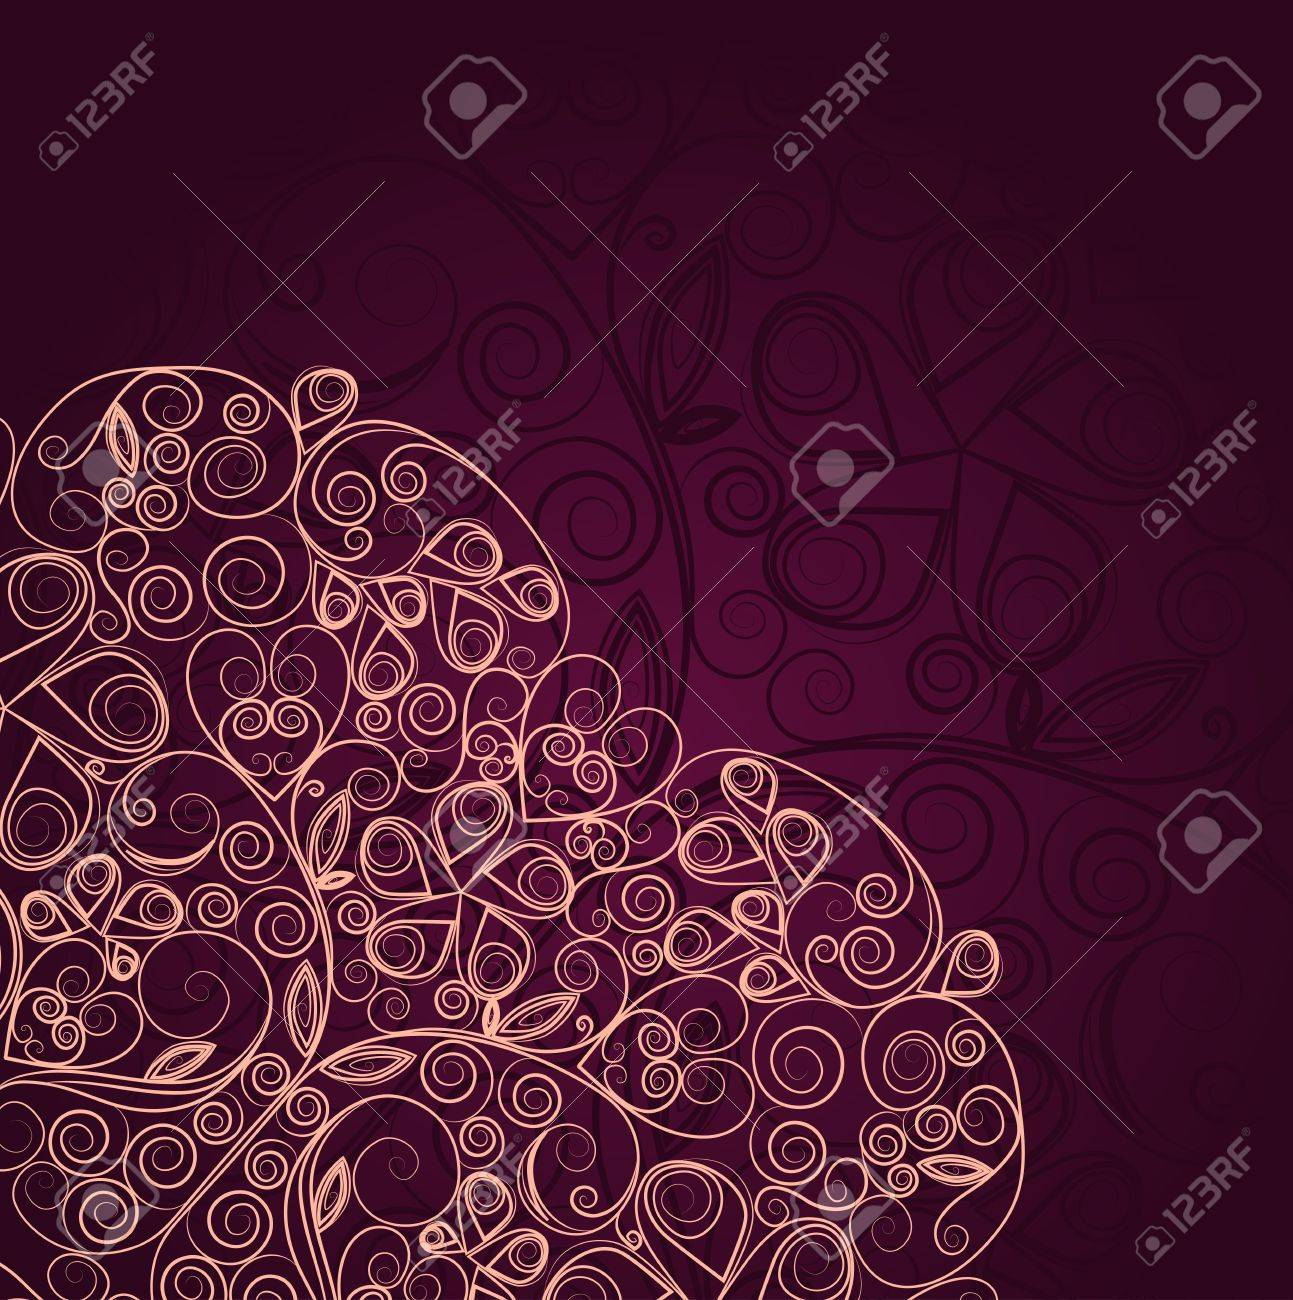 Vintage floral ornament heart design template Stock Vector - 16974737